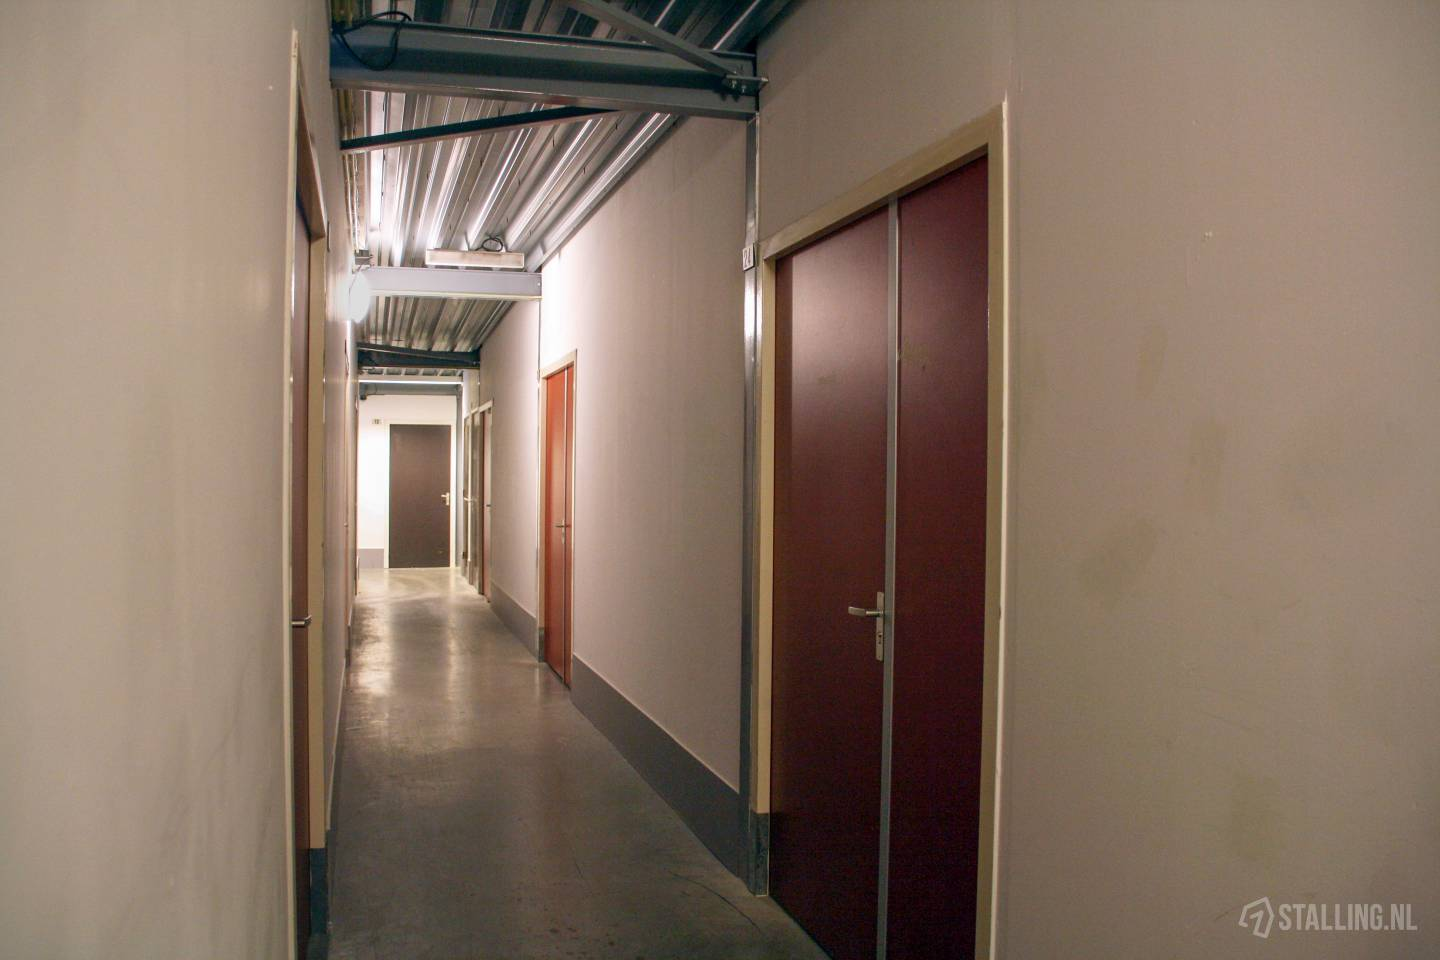 ievema beheer bv self-storage in regio maarssen